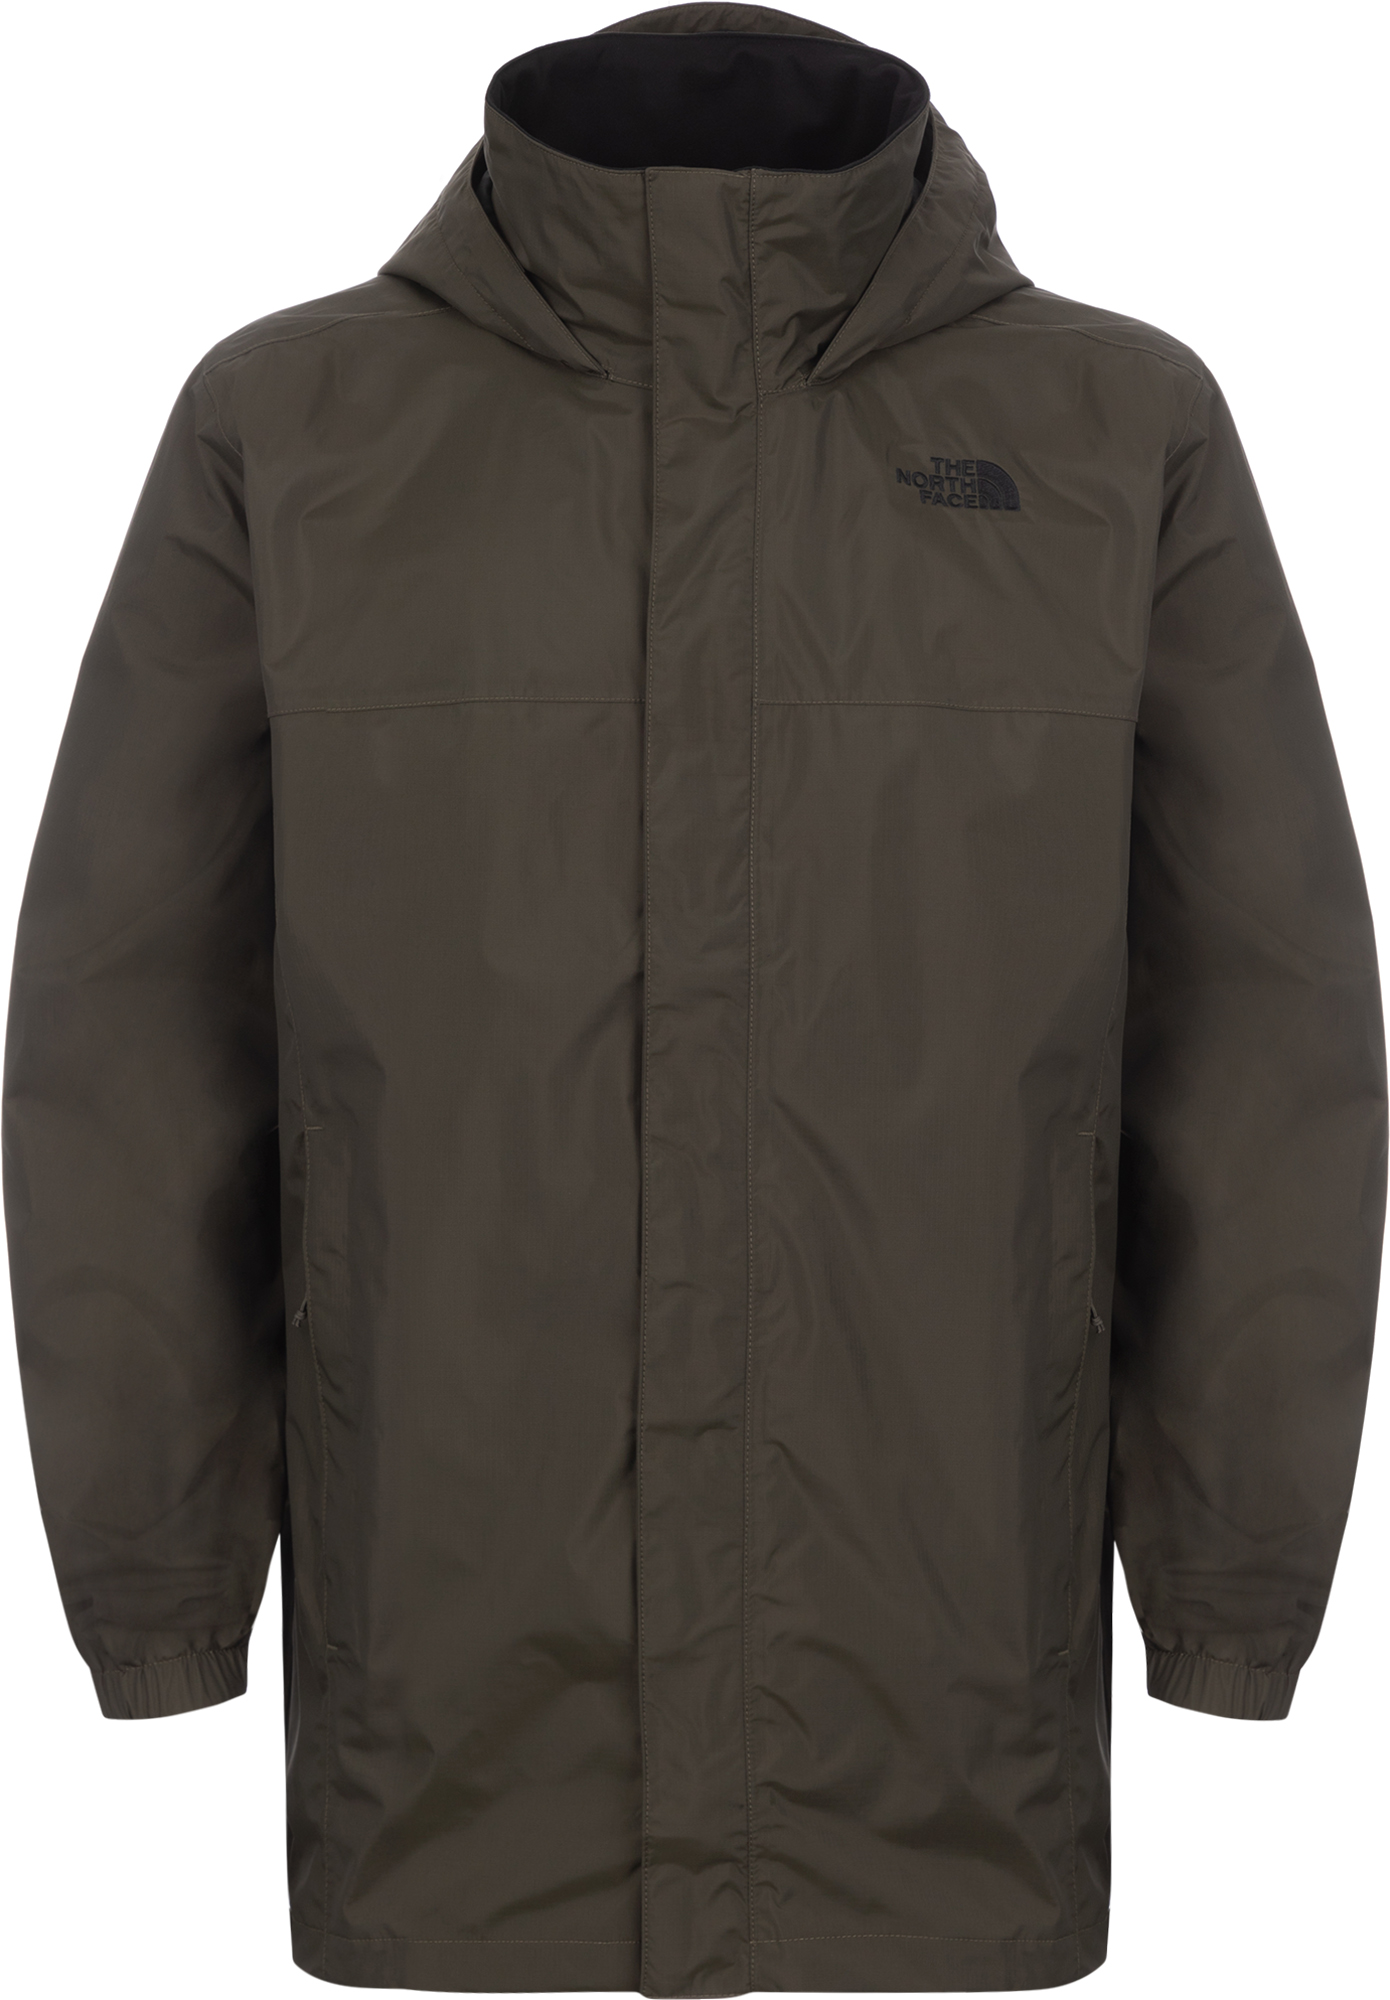 The North Face Ветровка мужская The North Face Resolve, размер 50 the north face orcadas parka